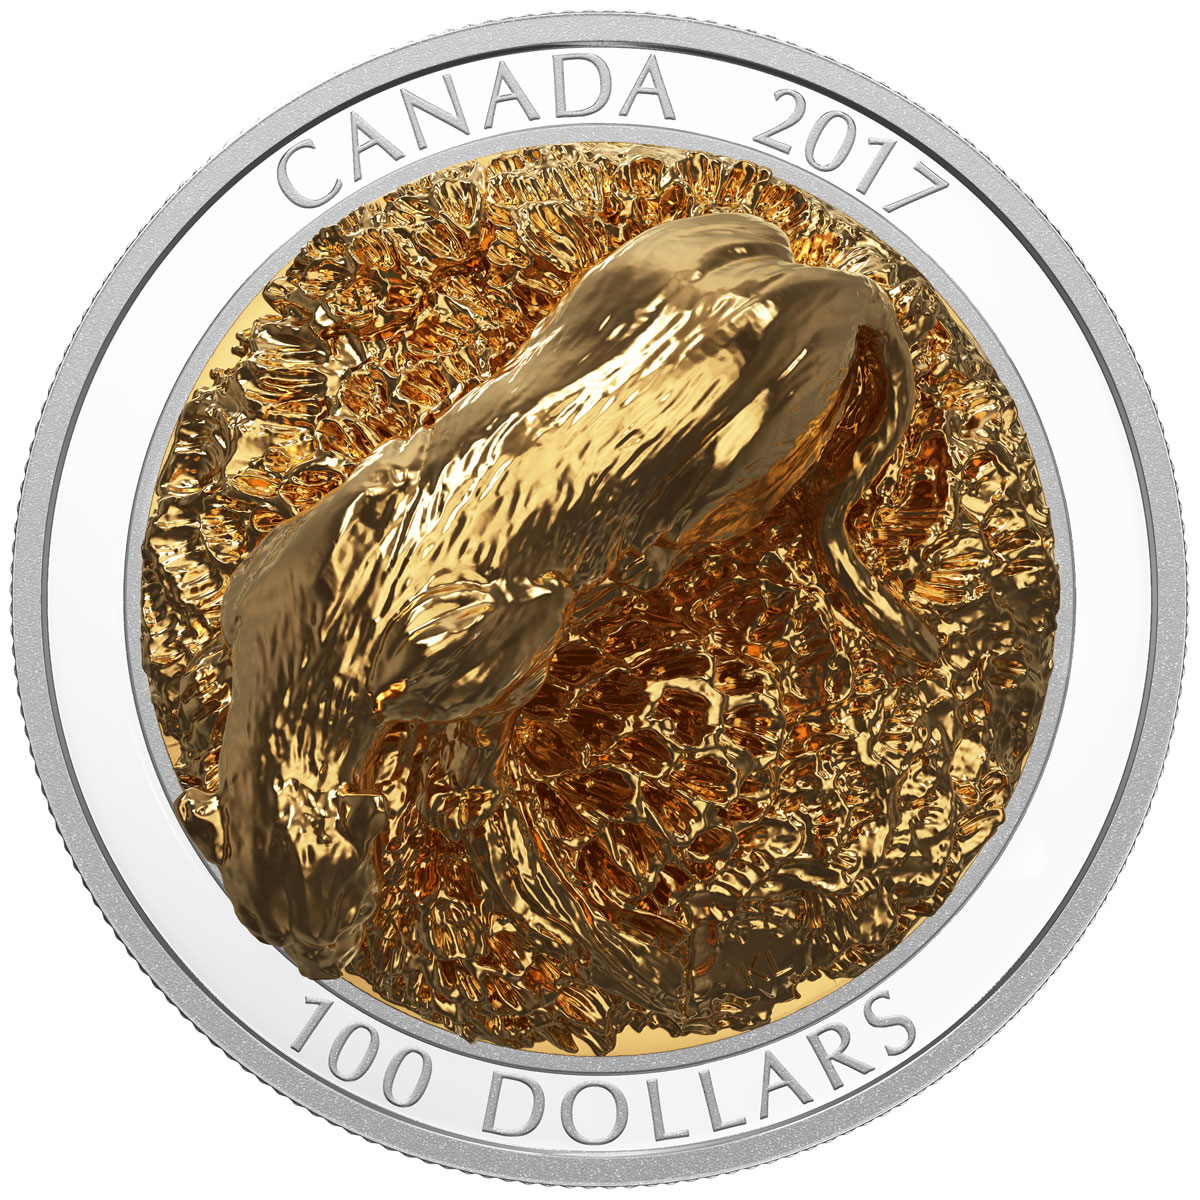 2016 canada 100 10 oz gold plated proof silver sculpture of